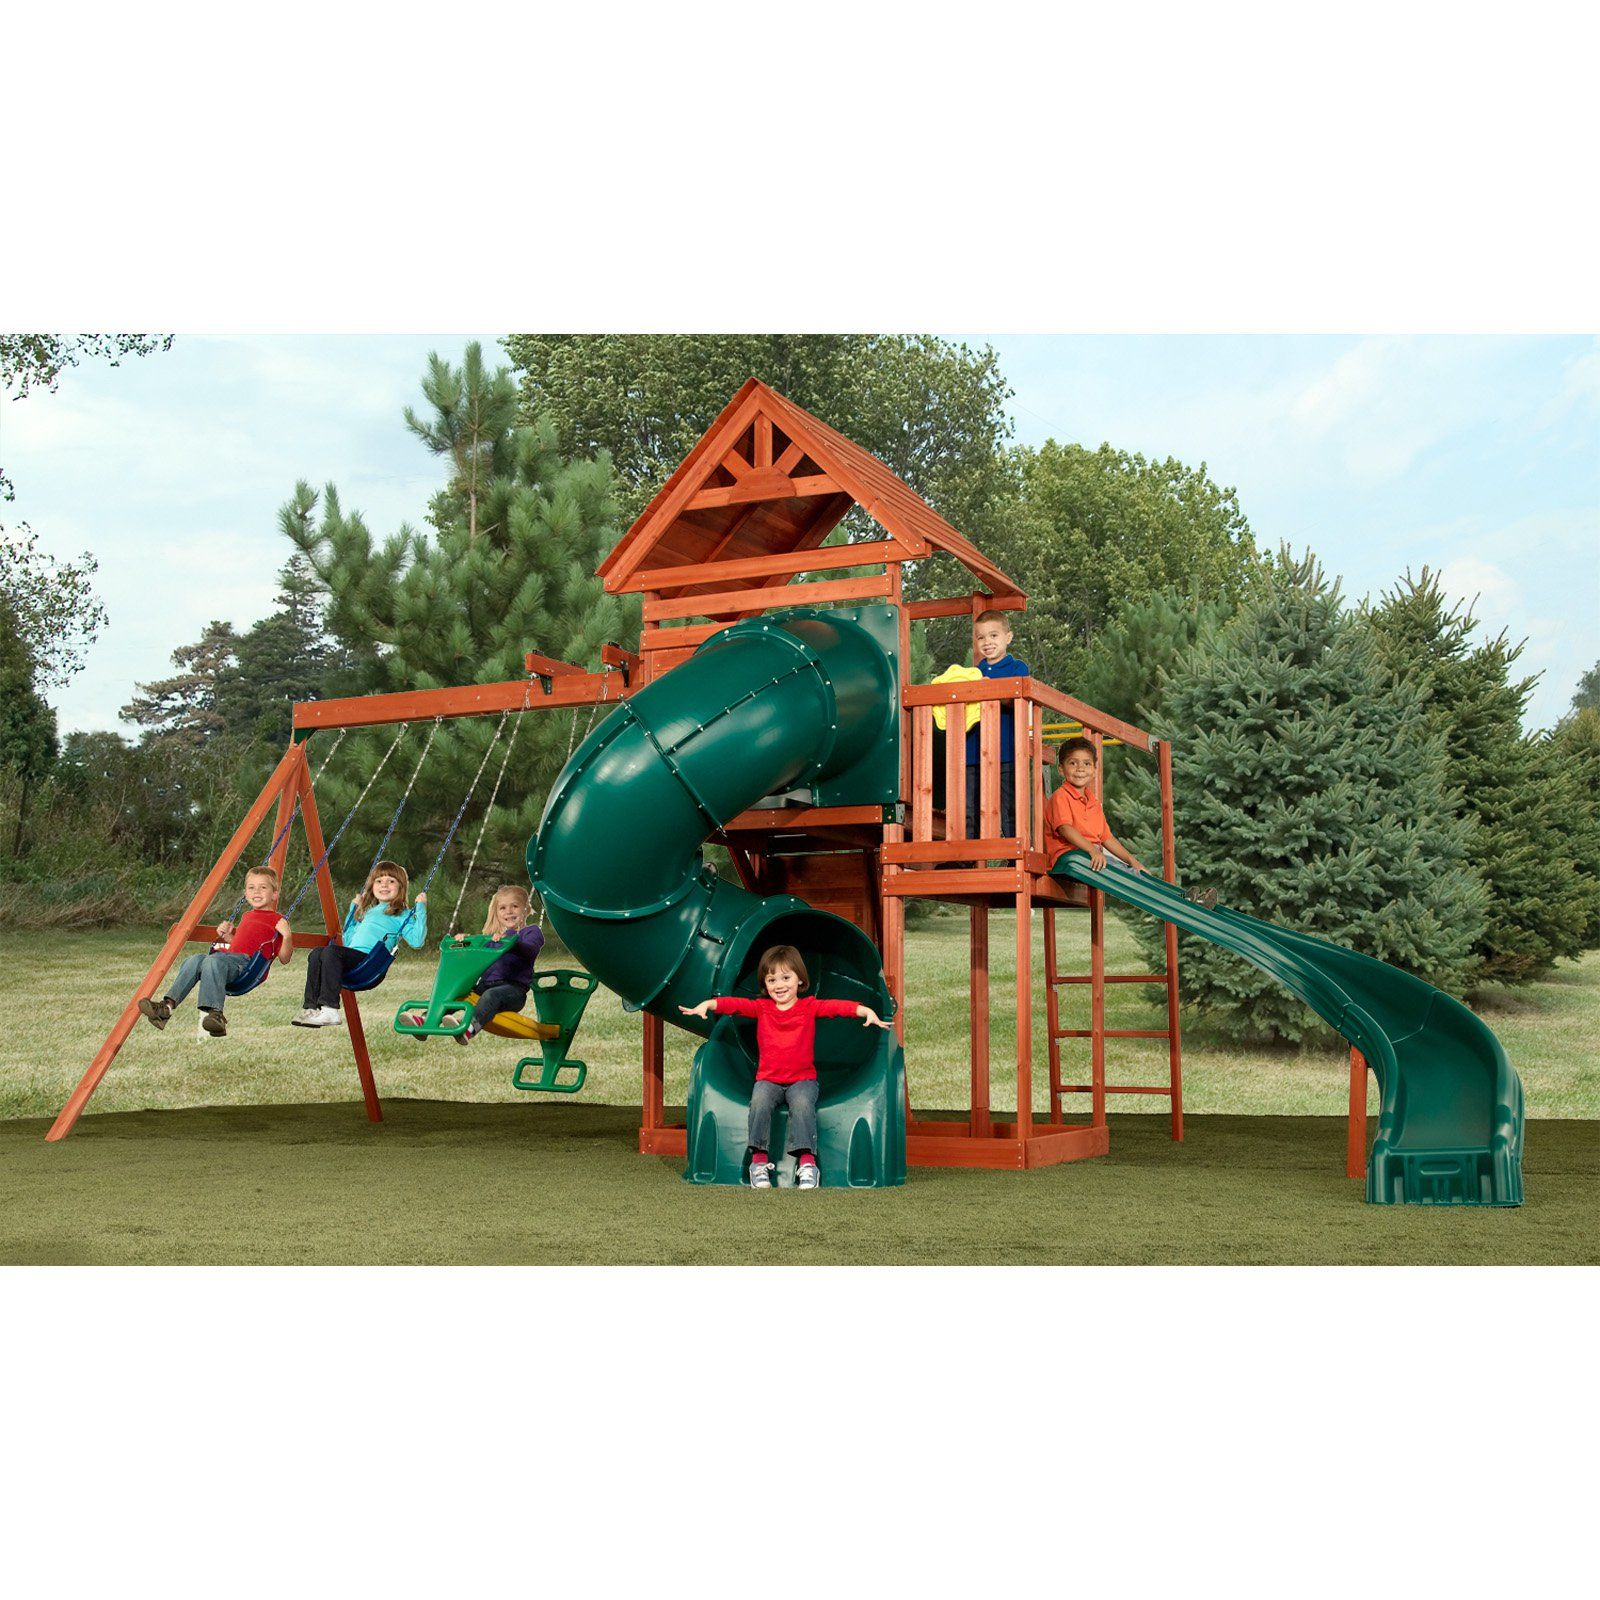 Swing N Slide Grandview Twist Wood Swing Set PB 8272T